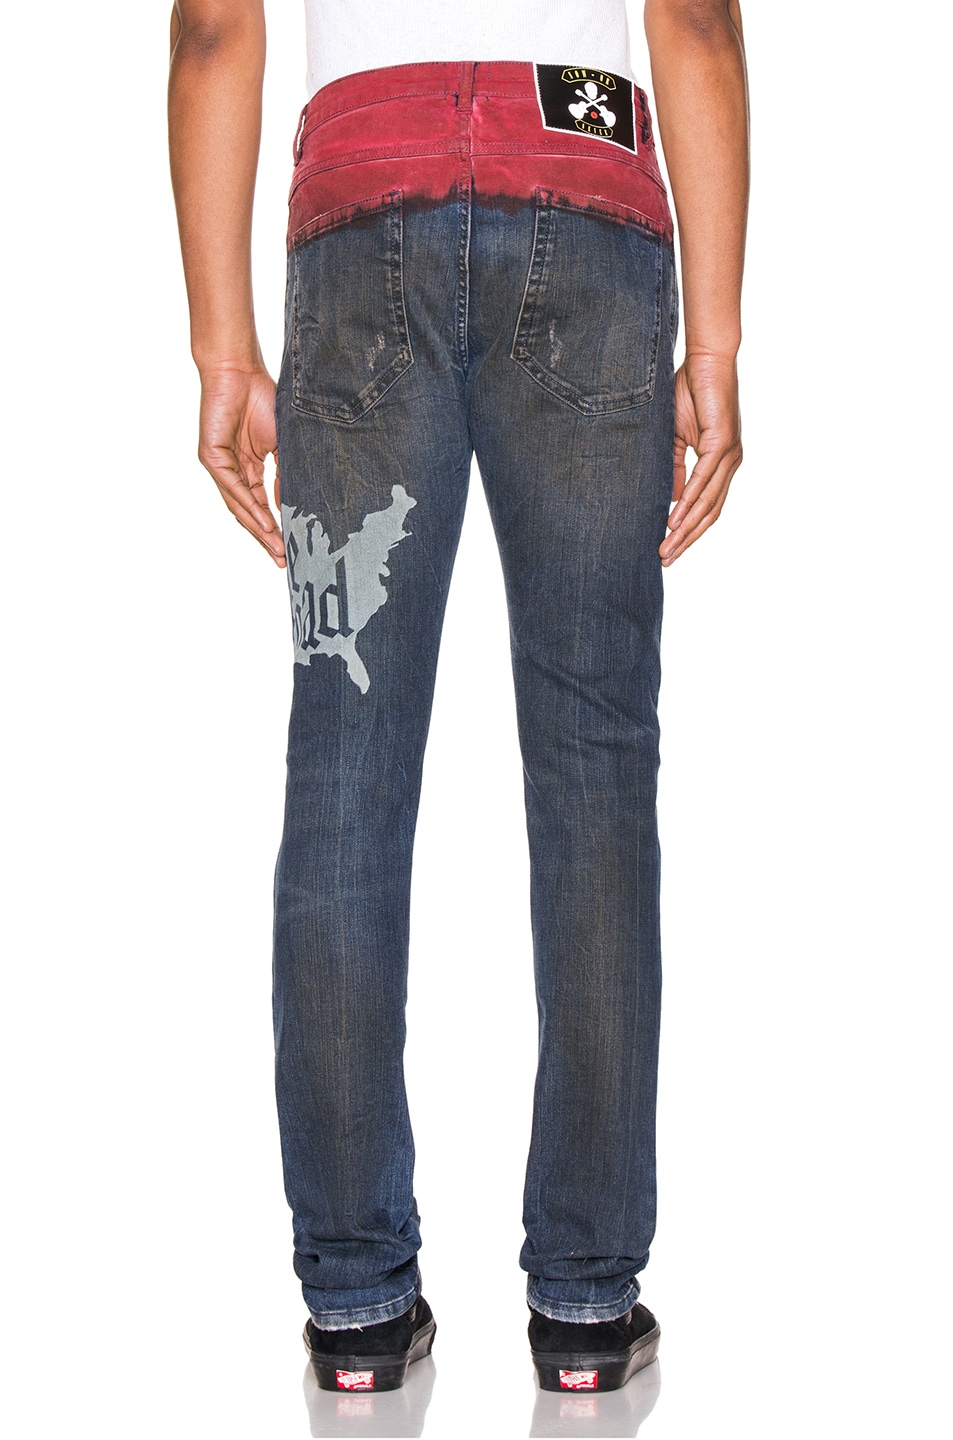 Image 4 of Alchemist Hold Etched Dip Dyed Jean in Indigo & Red